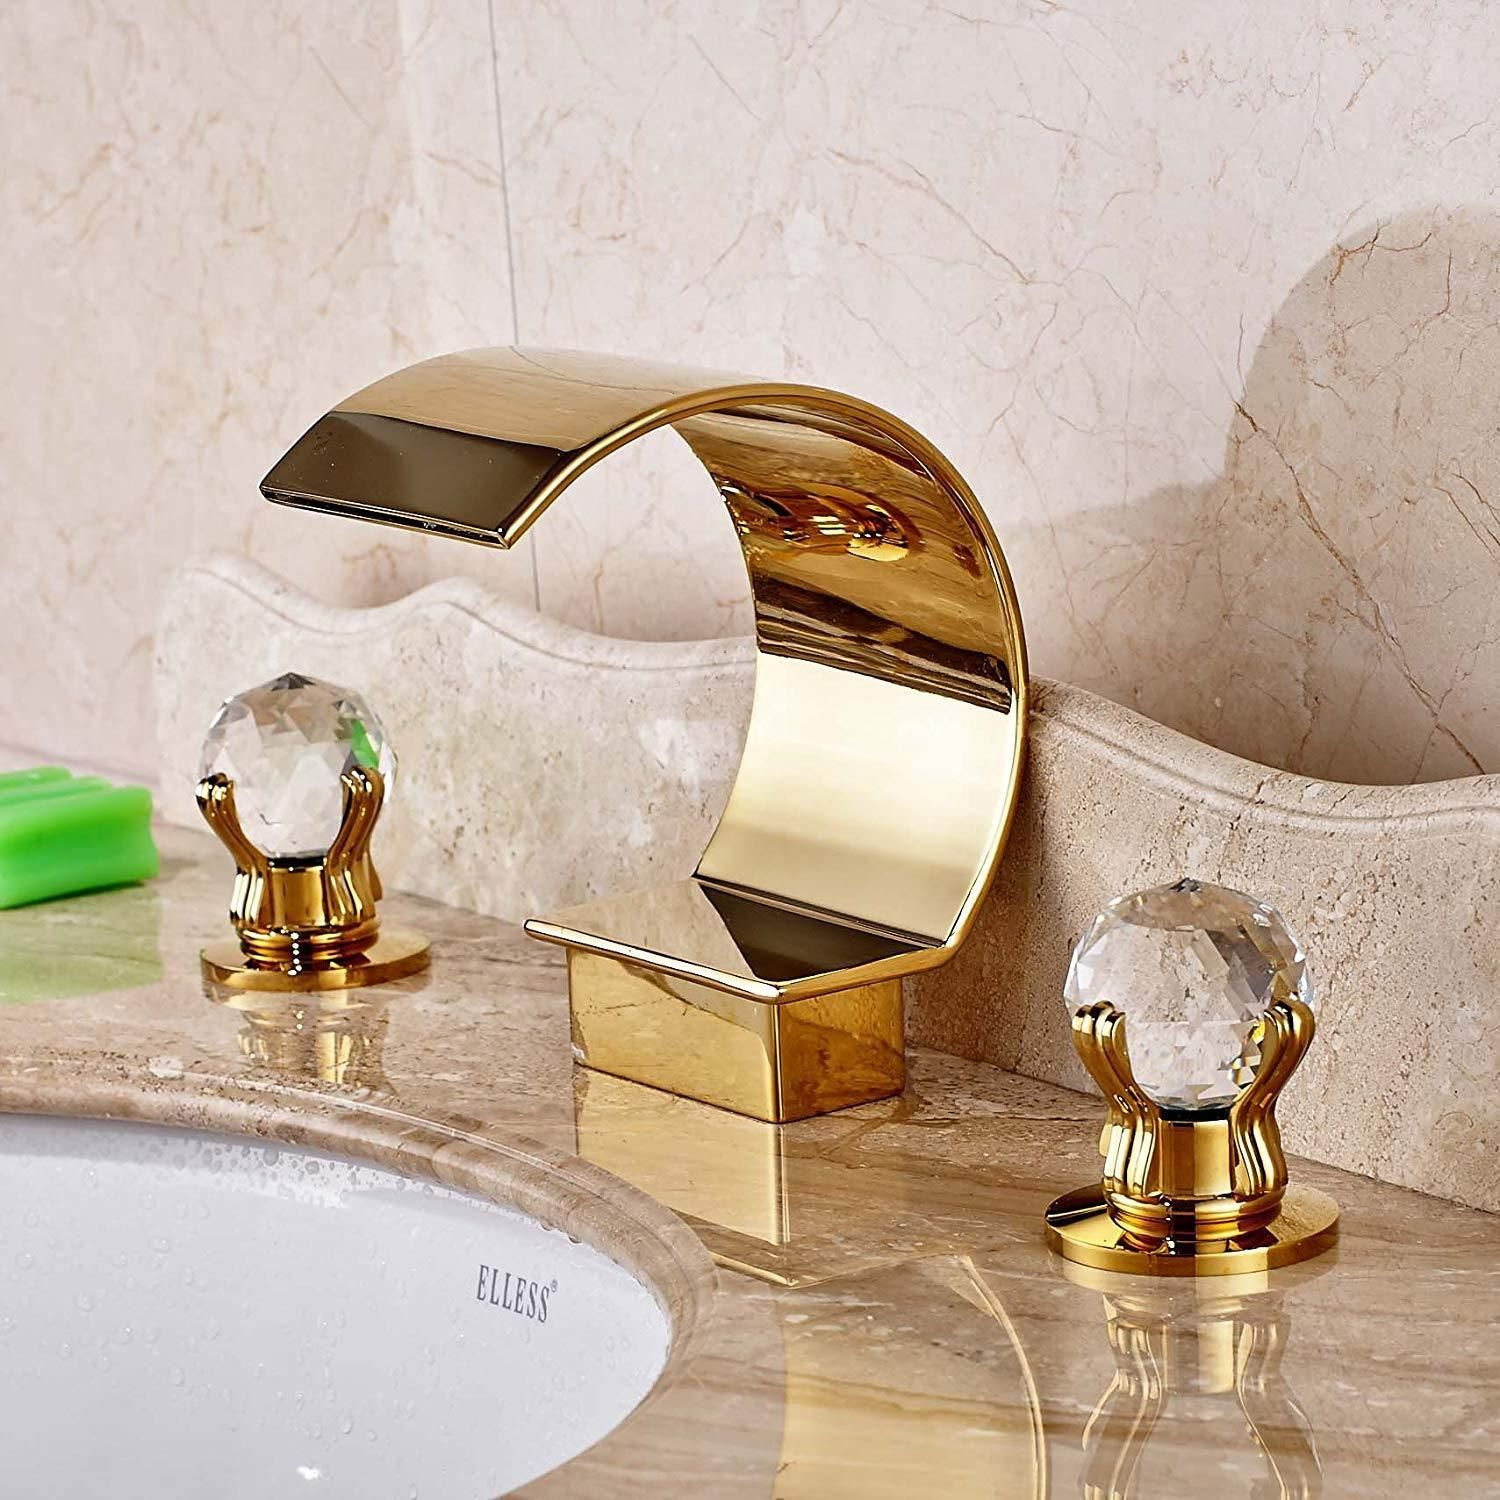 Waterfall Spout Bathroom Sink Faucet Dual Glass Handles Basin